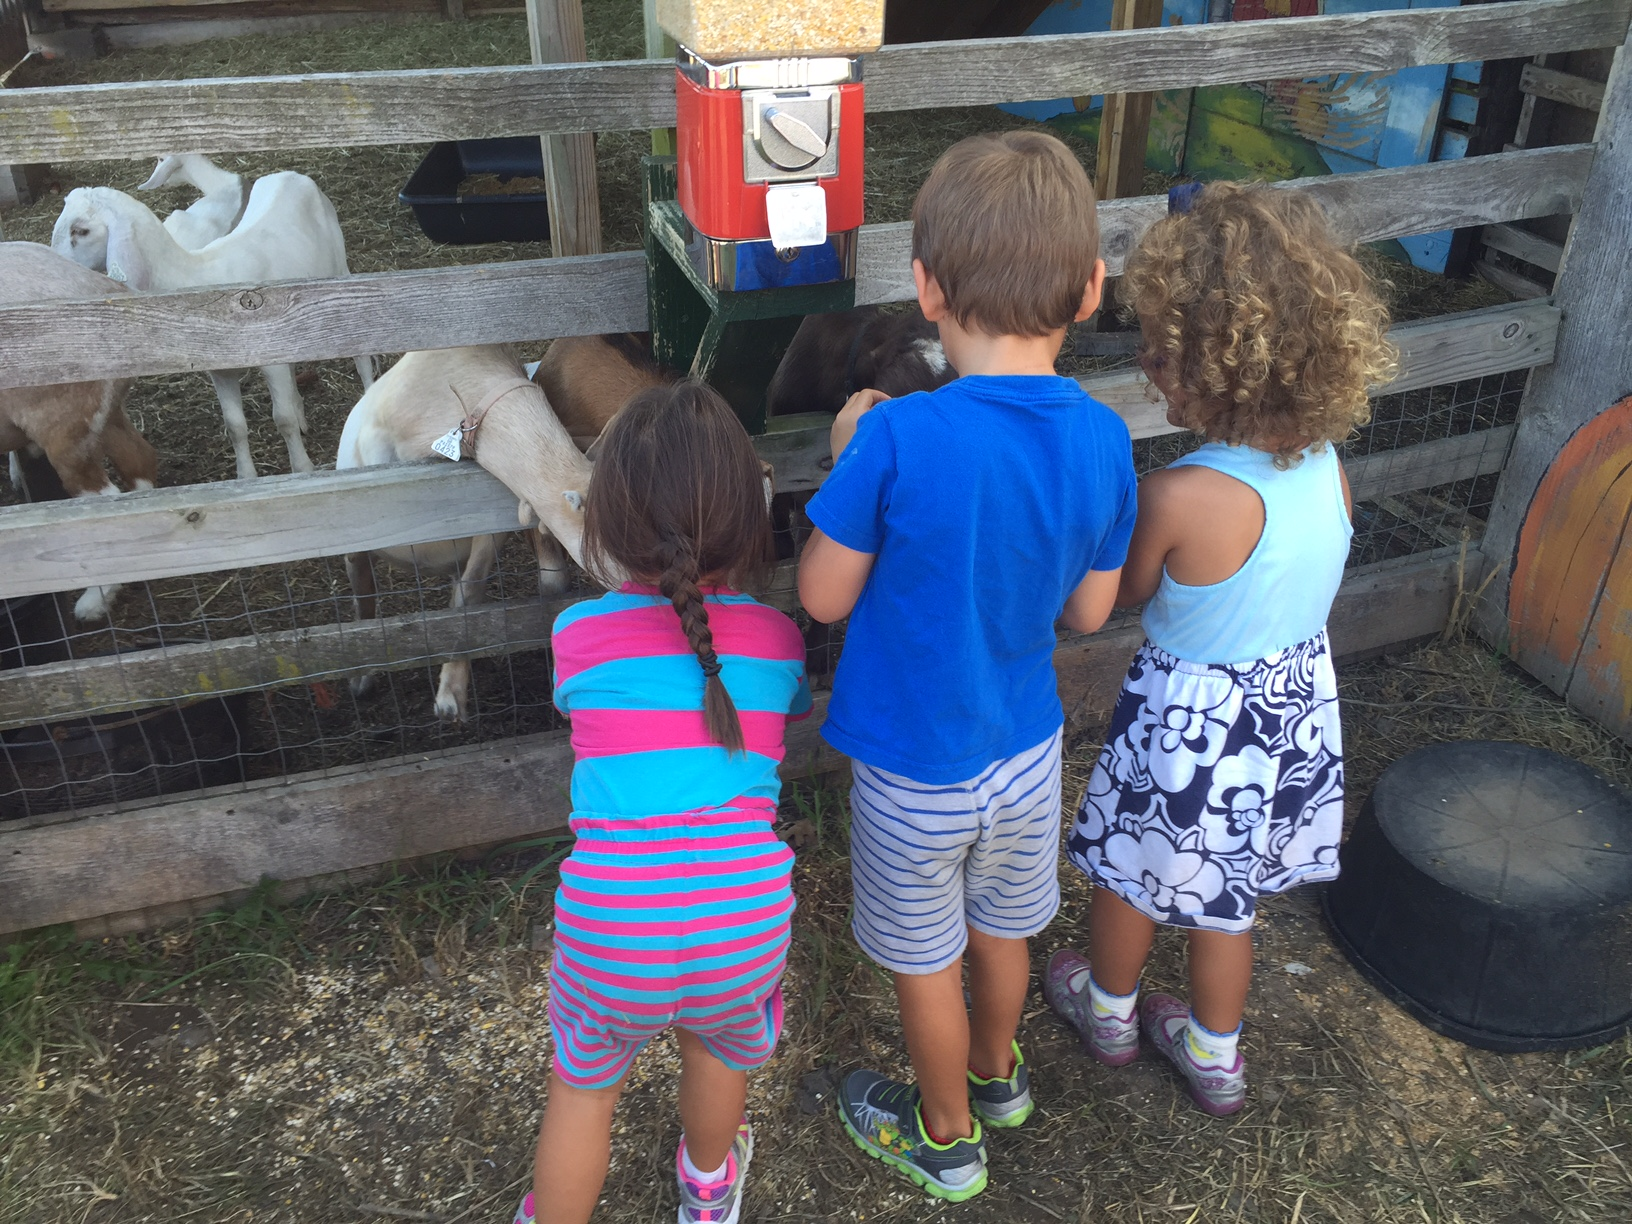 The kids loved feeding the farm animals. Emma with friends, Henry and Maddy.